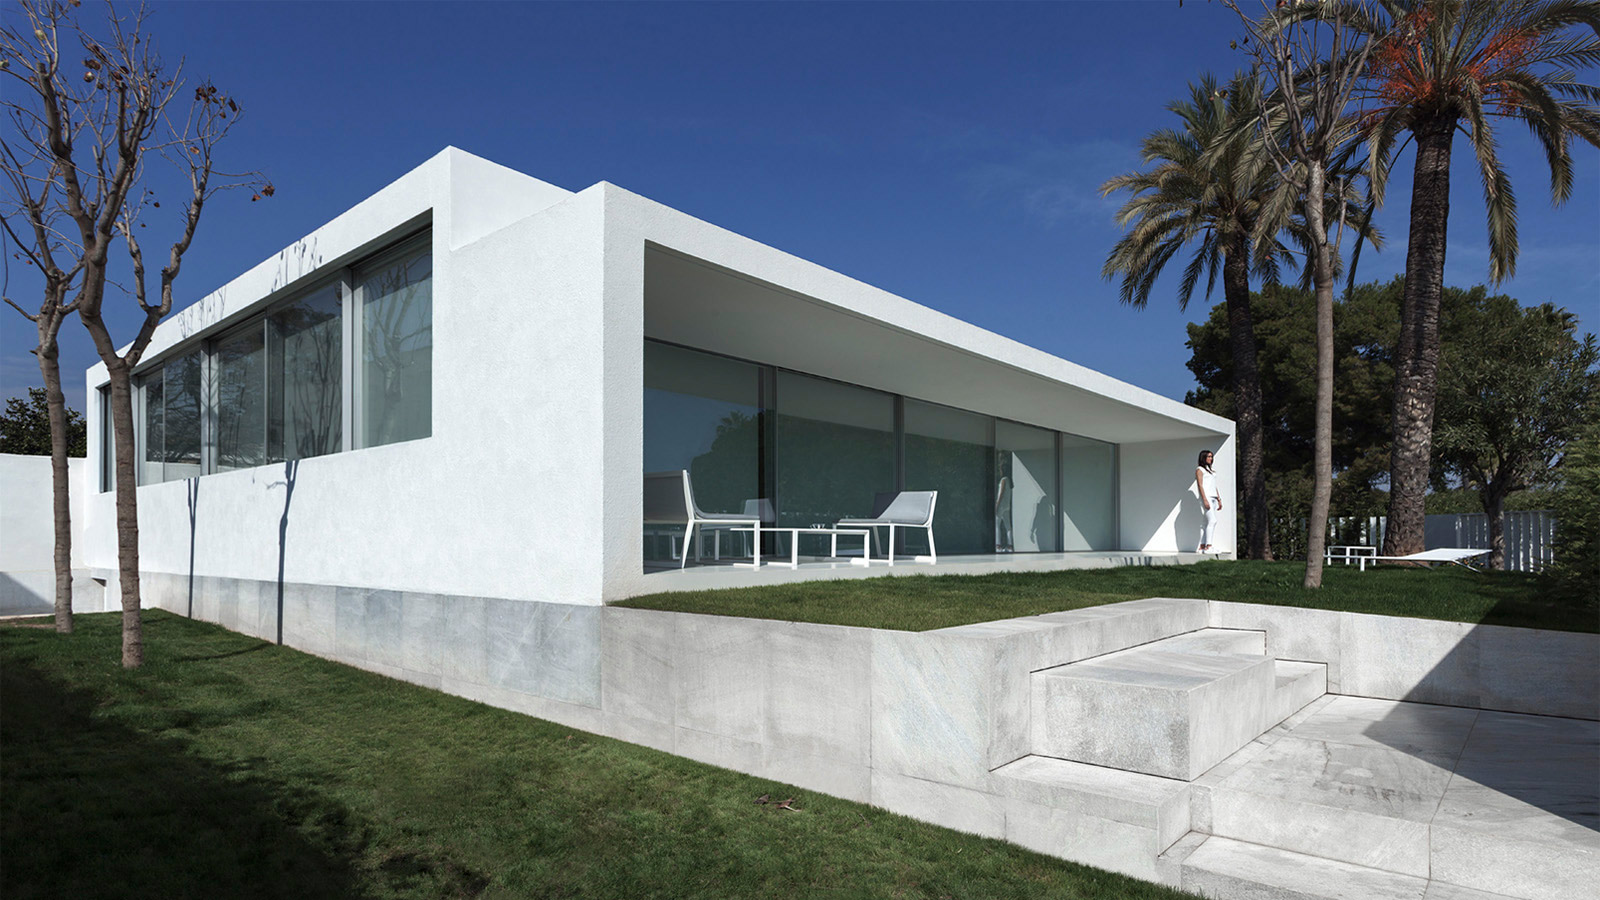 PORCELANOSA Group Projects: La Casa de la Brisa de Fran Silvestre